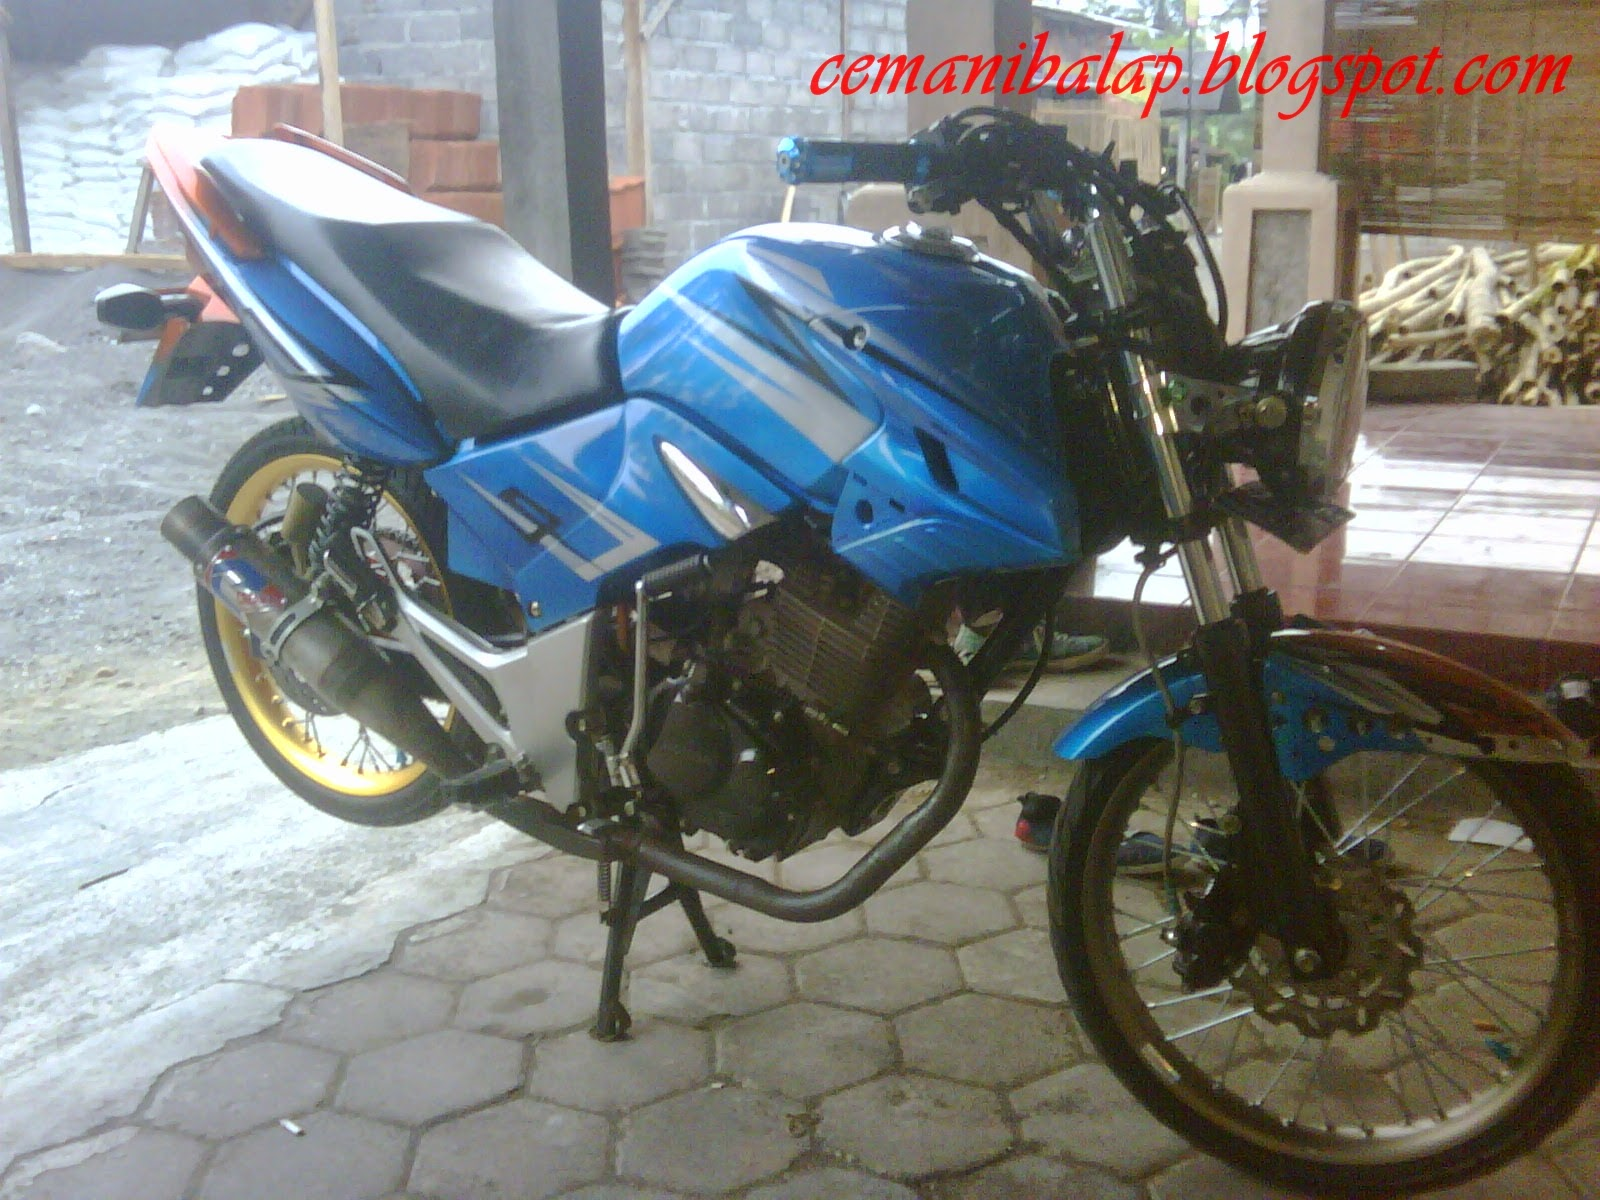 Tiger Revo Modifikasi Ceper